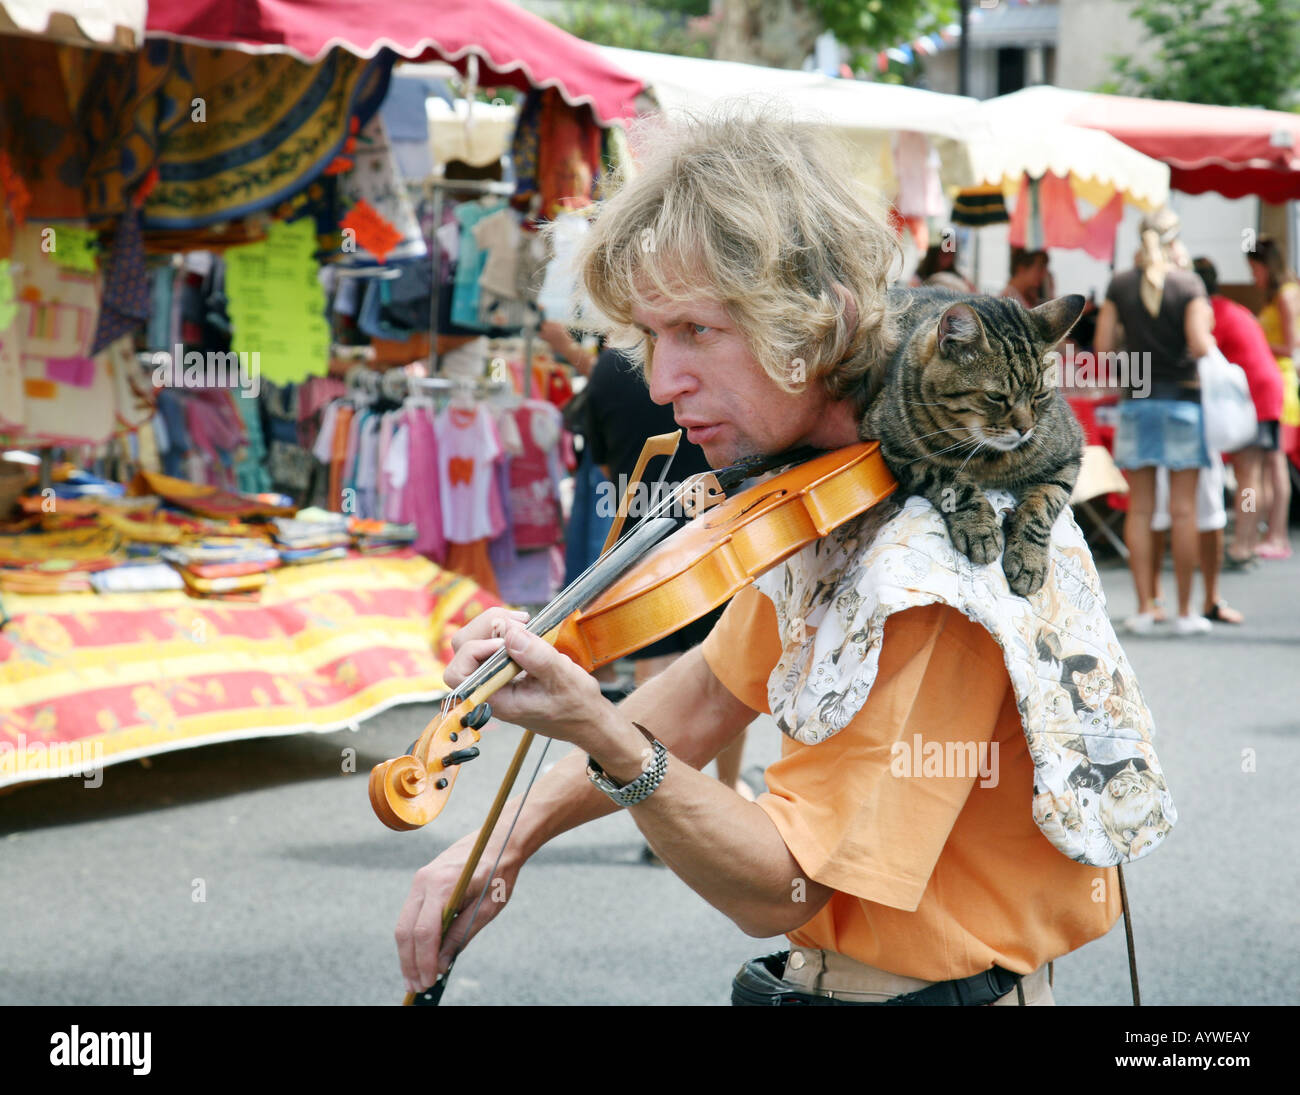 a-violin-player-in-the-market-with-his-cat-on-his-shoulders-lorgues-AYWEAY.jpg